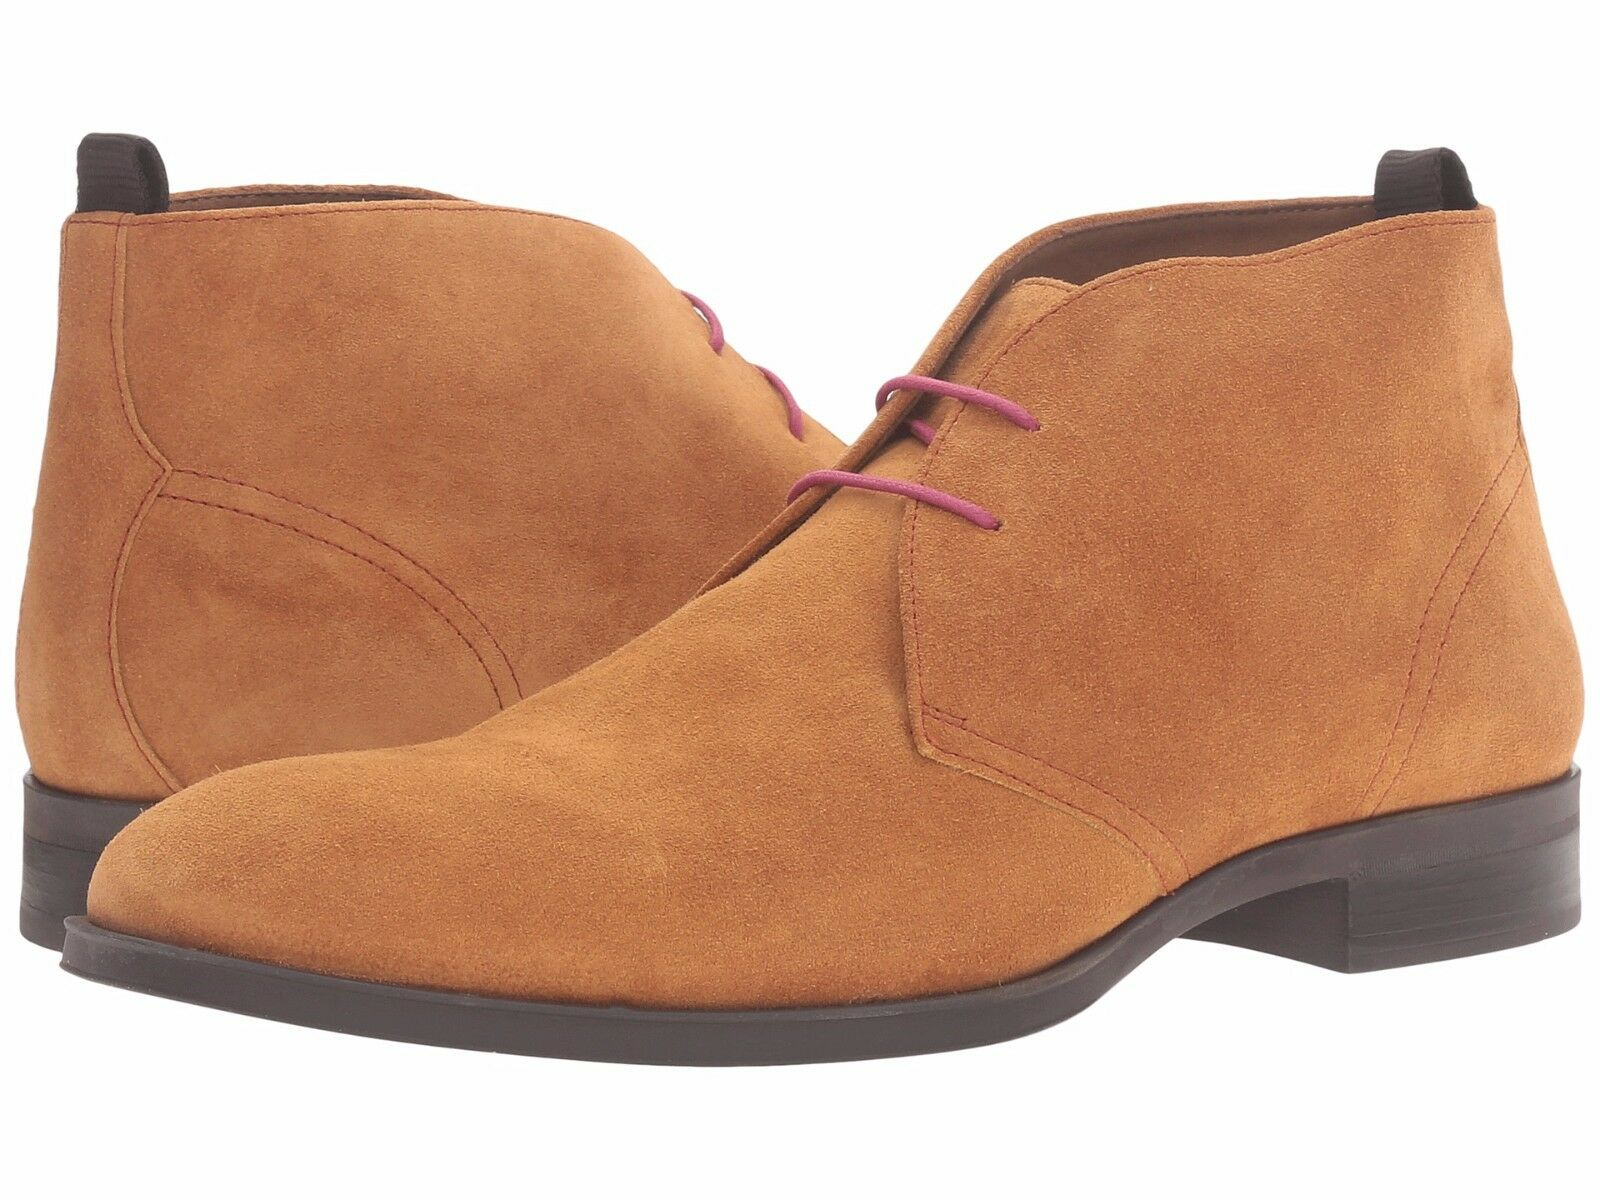 Men's Donald J Pliner Siro Saddle Suede SZ 12 MSRP 220 Made in ITALY